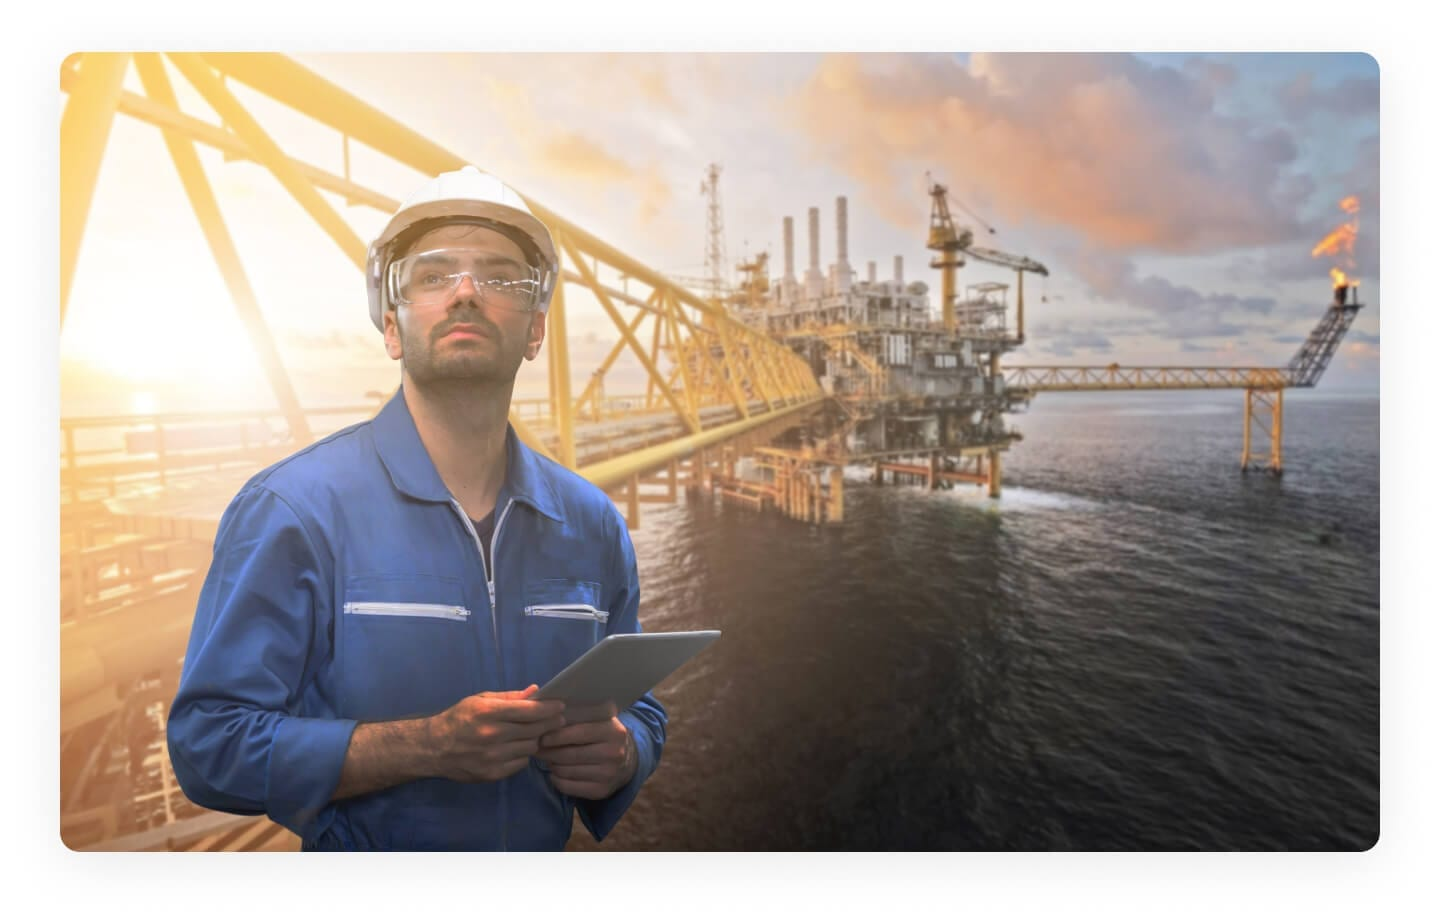 Oil and gas inspection